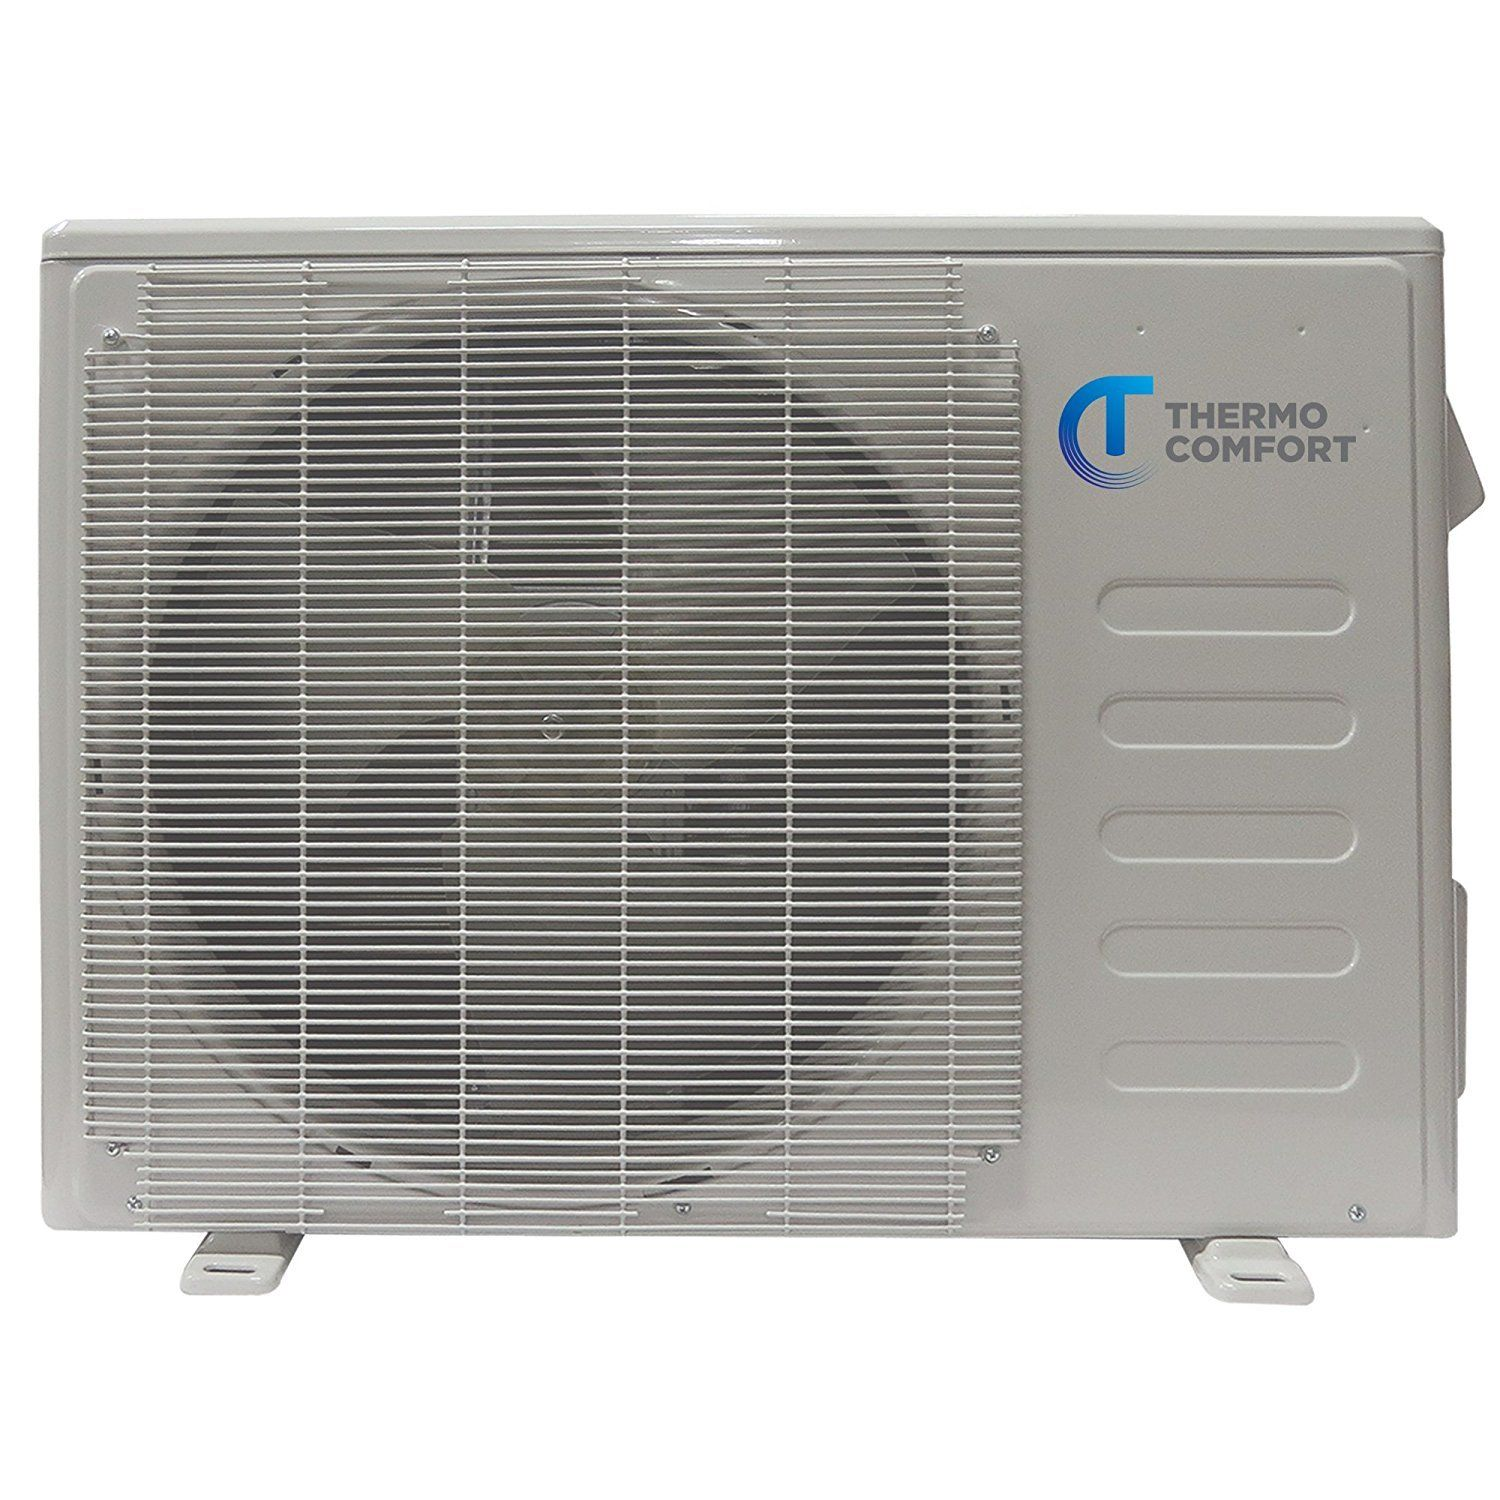 Mini Split Air Conditioner 18000 BTU 1.5 Ton 21.5 SEER